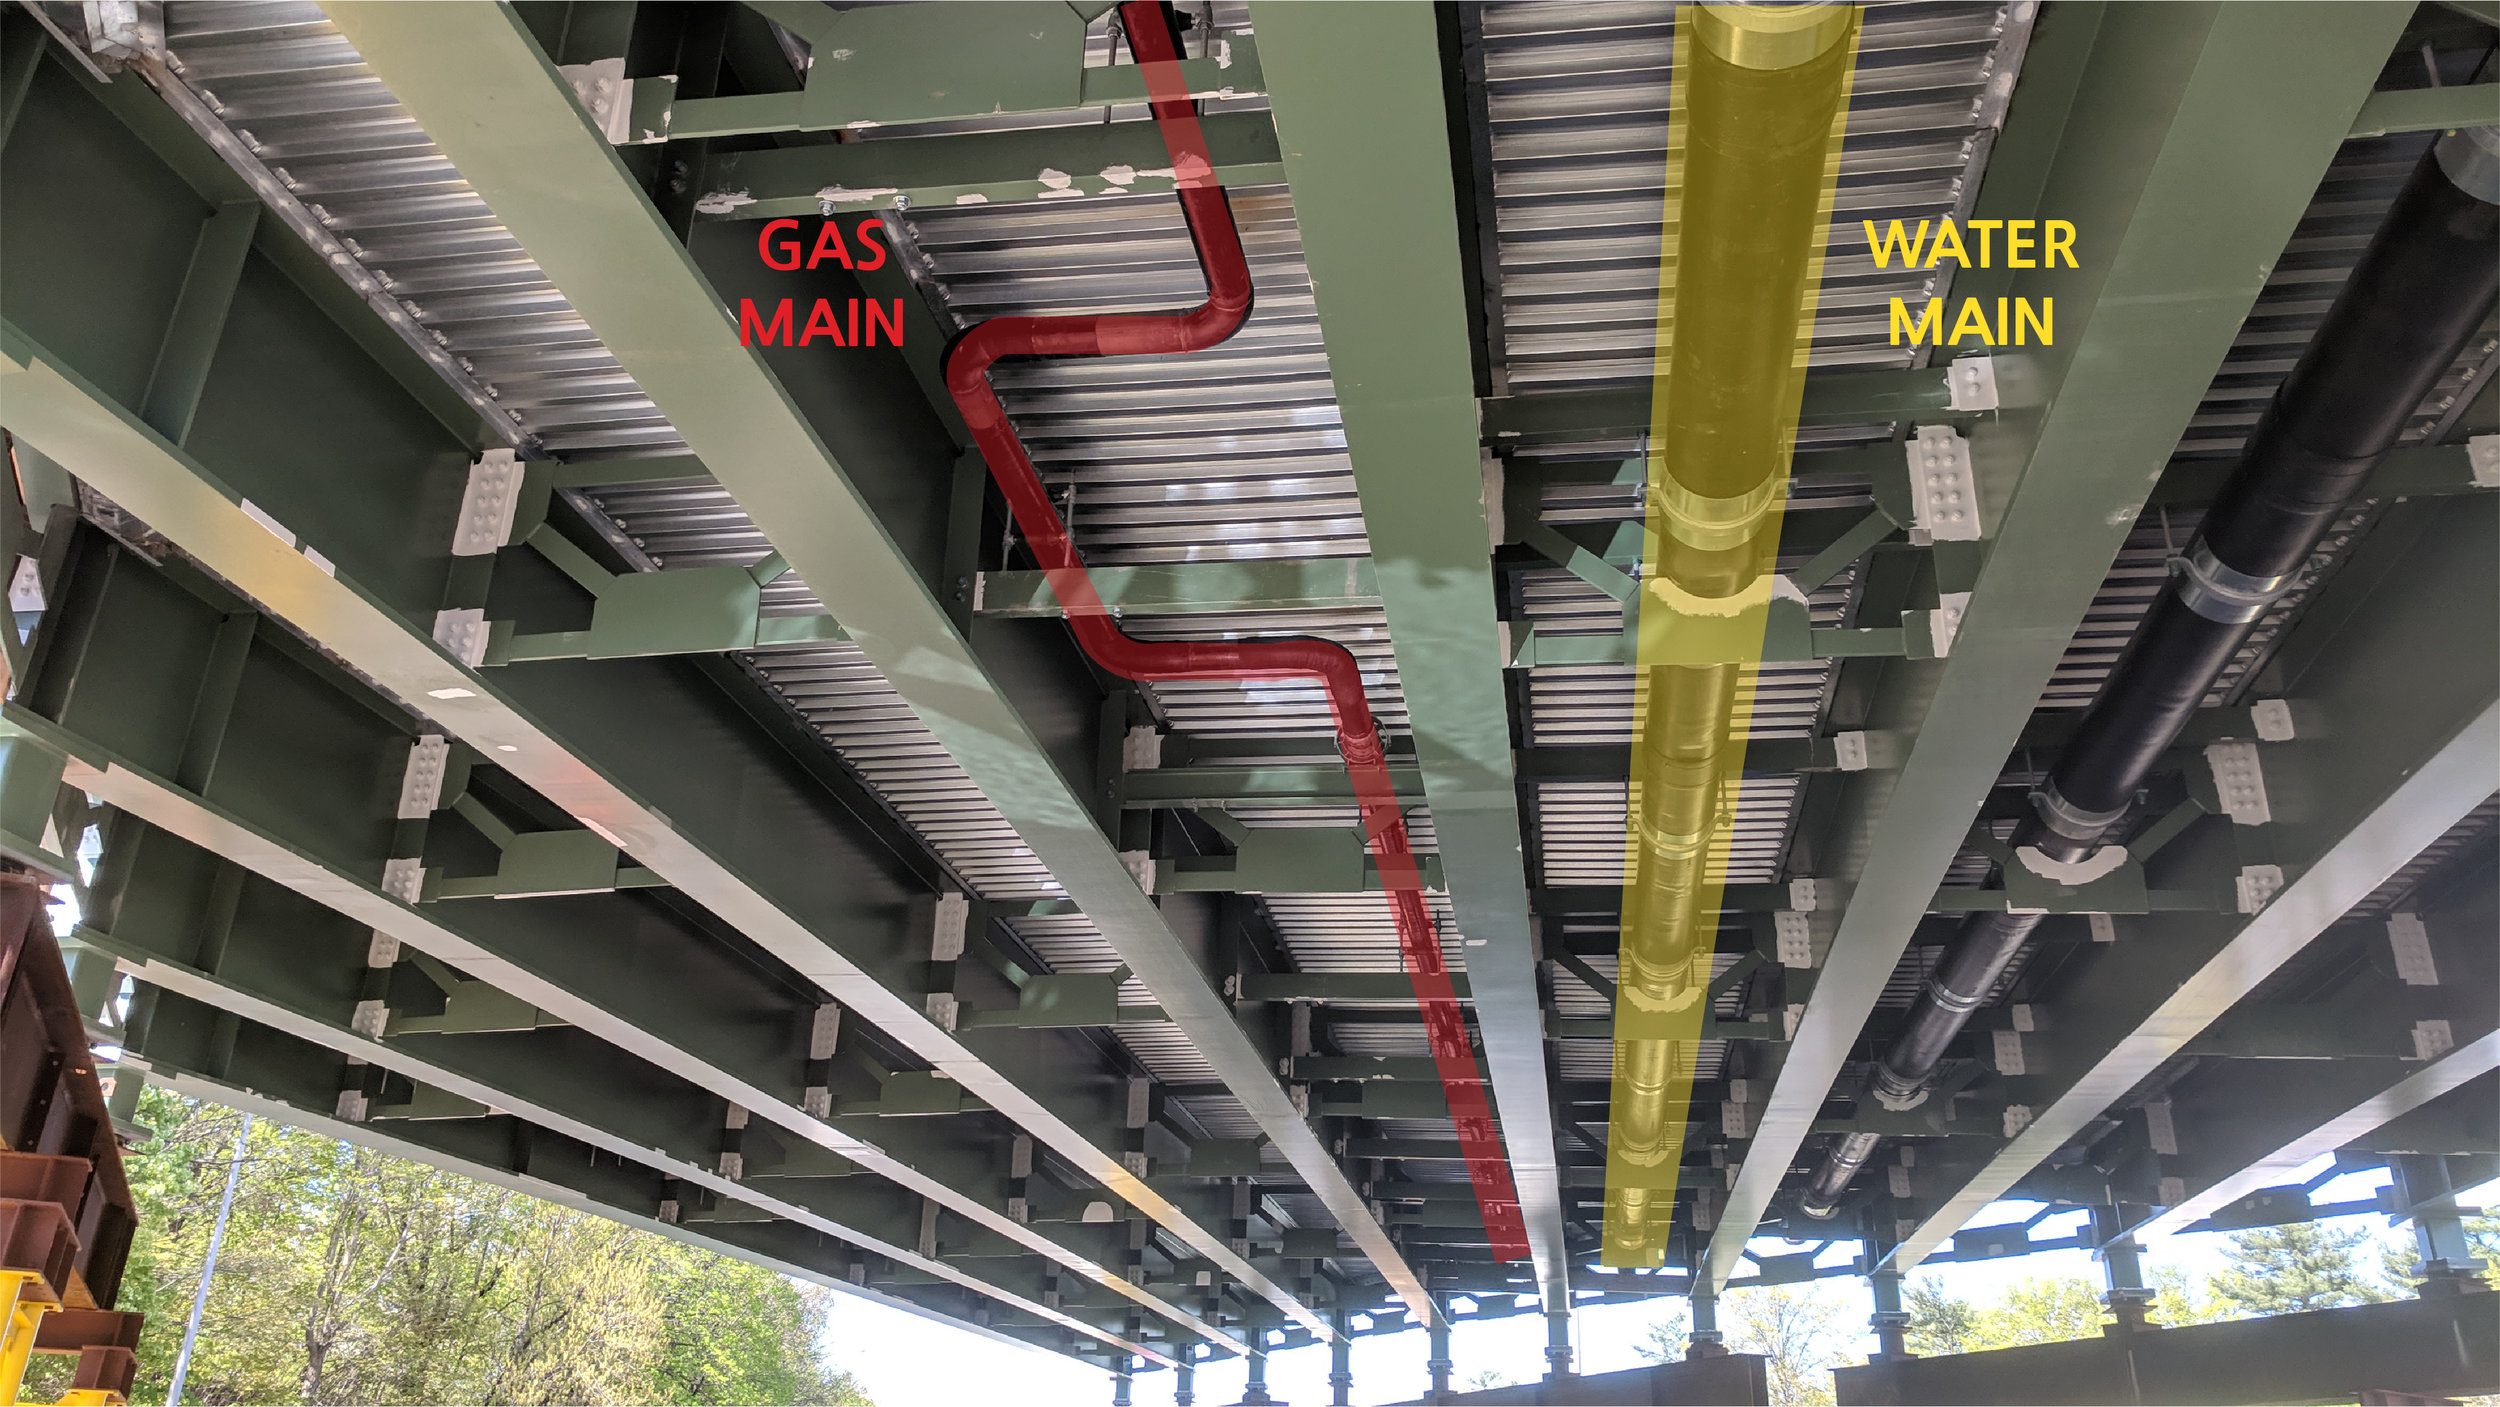 Gas main and Water main pipes completed under Span 2.  Taken on 5/7/19 by Jonathan Wu